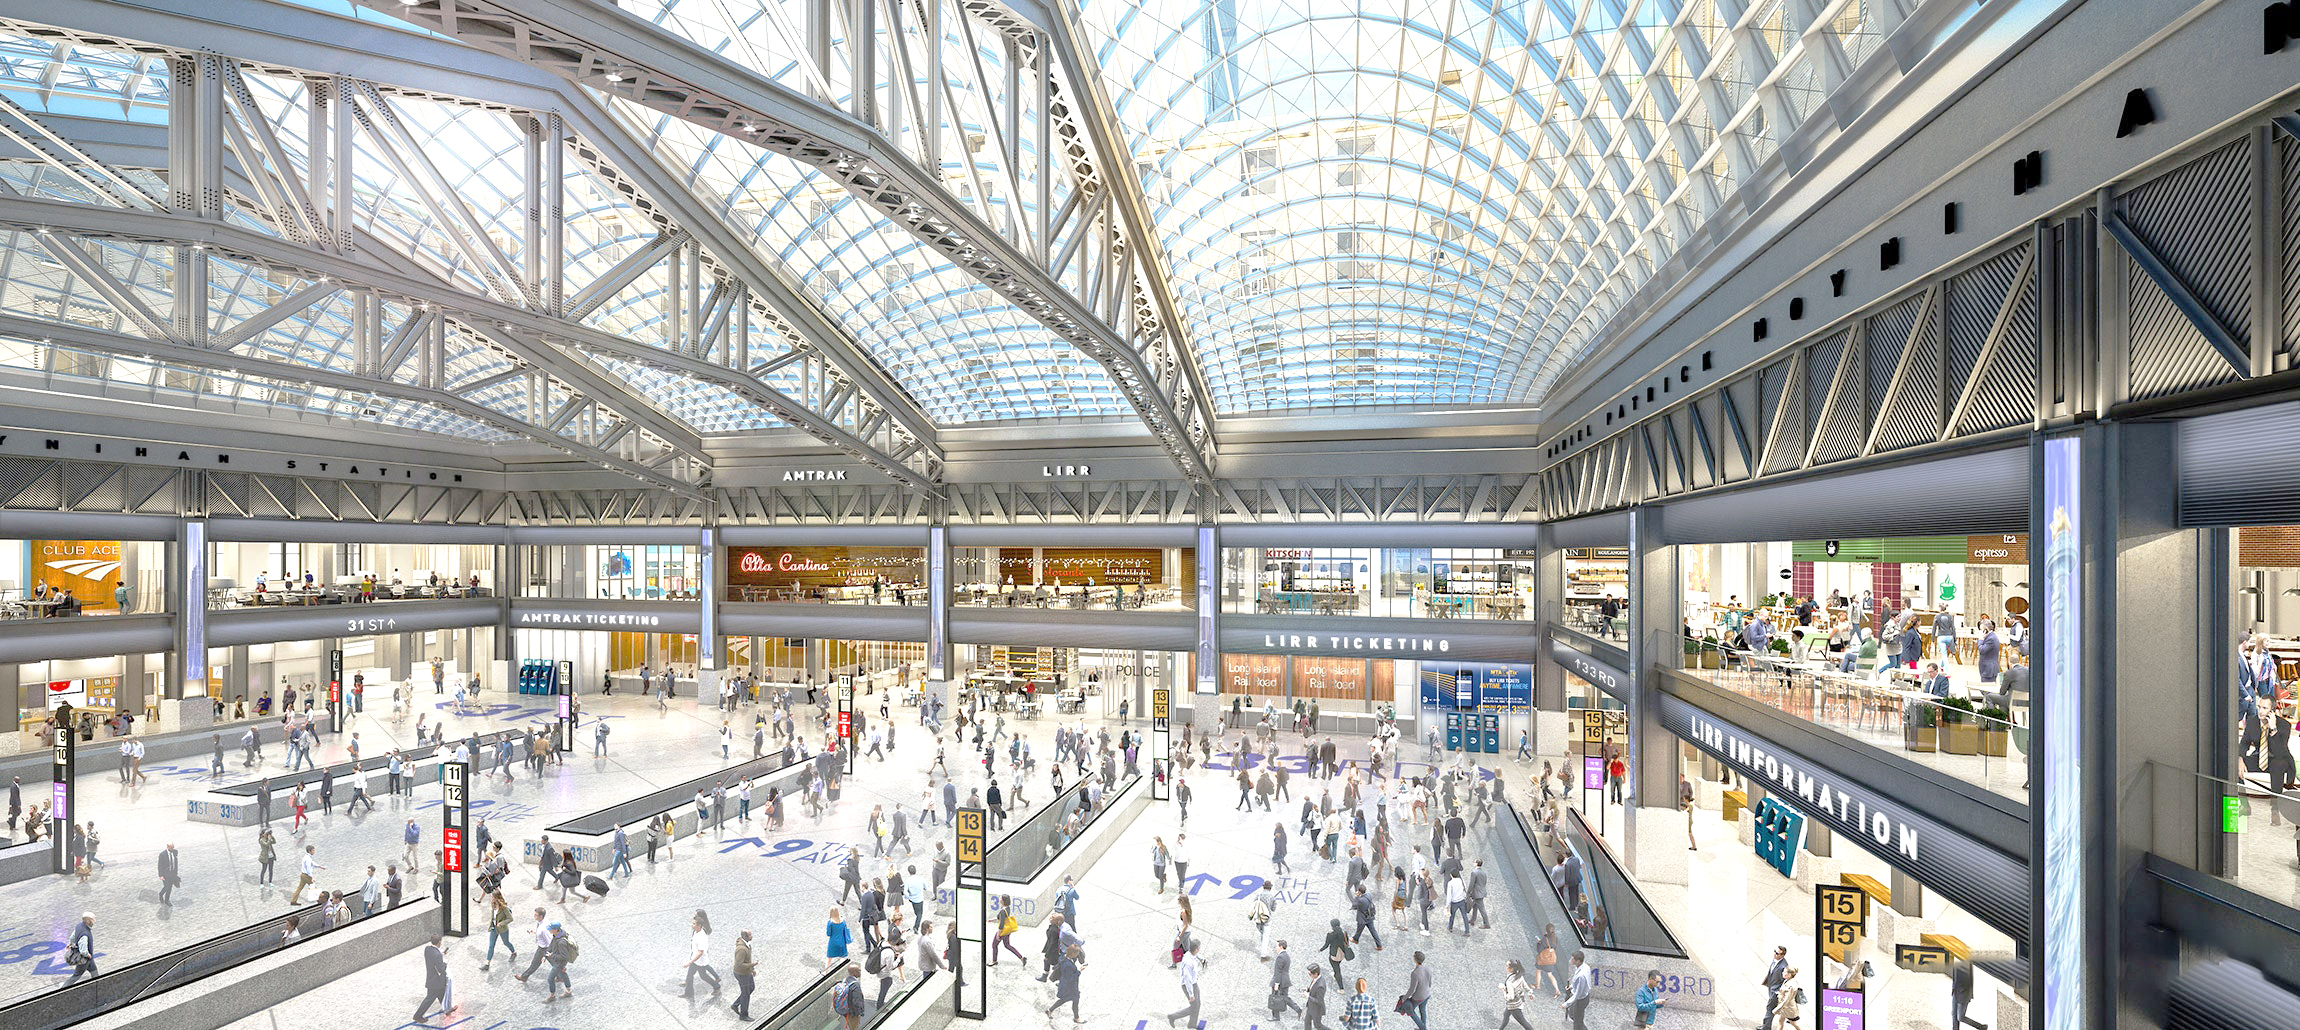 1-moynihan-train-hall-renderings_29965860095_o